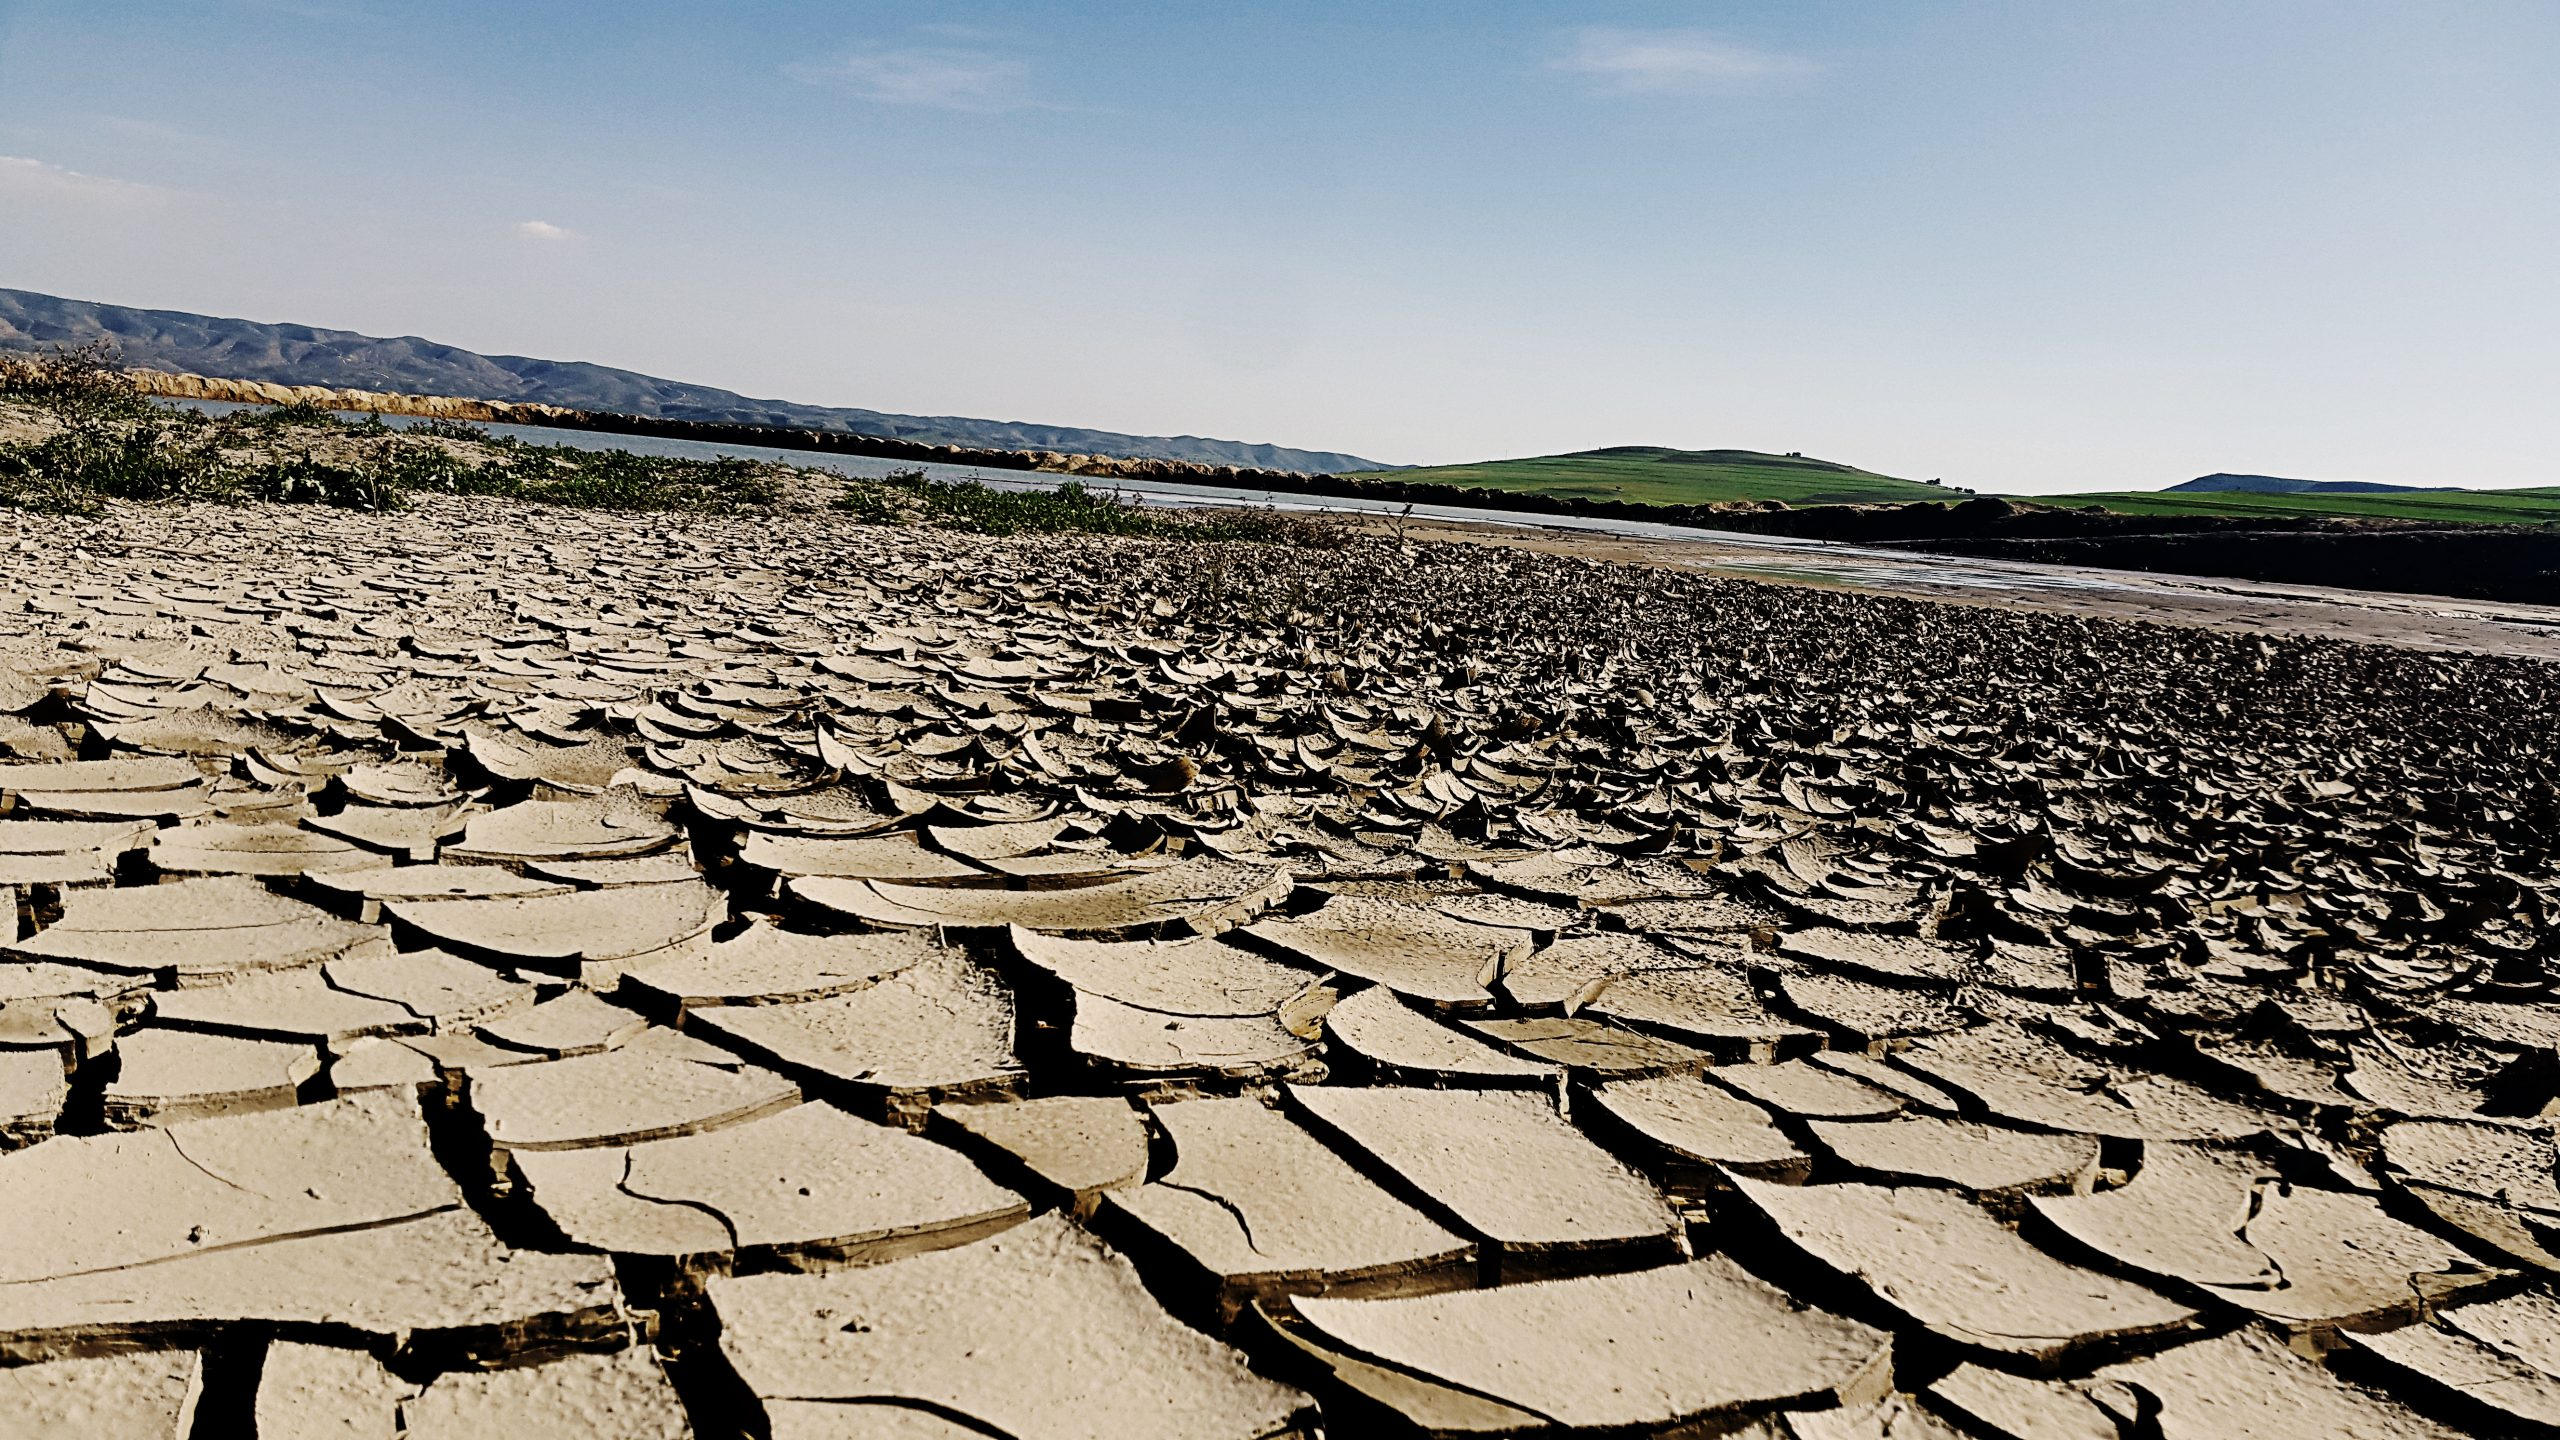 Expanse of dry, cracked mud